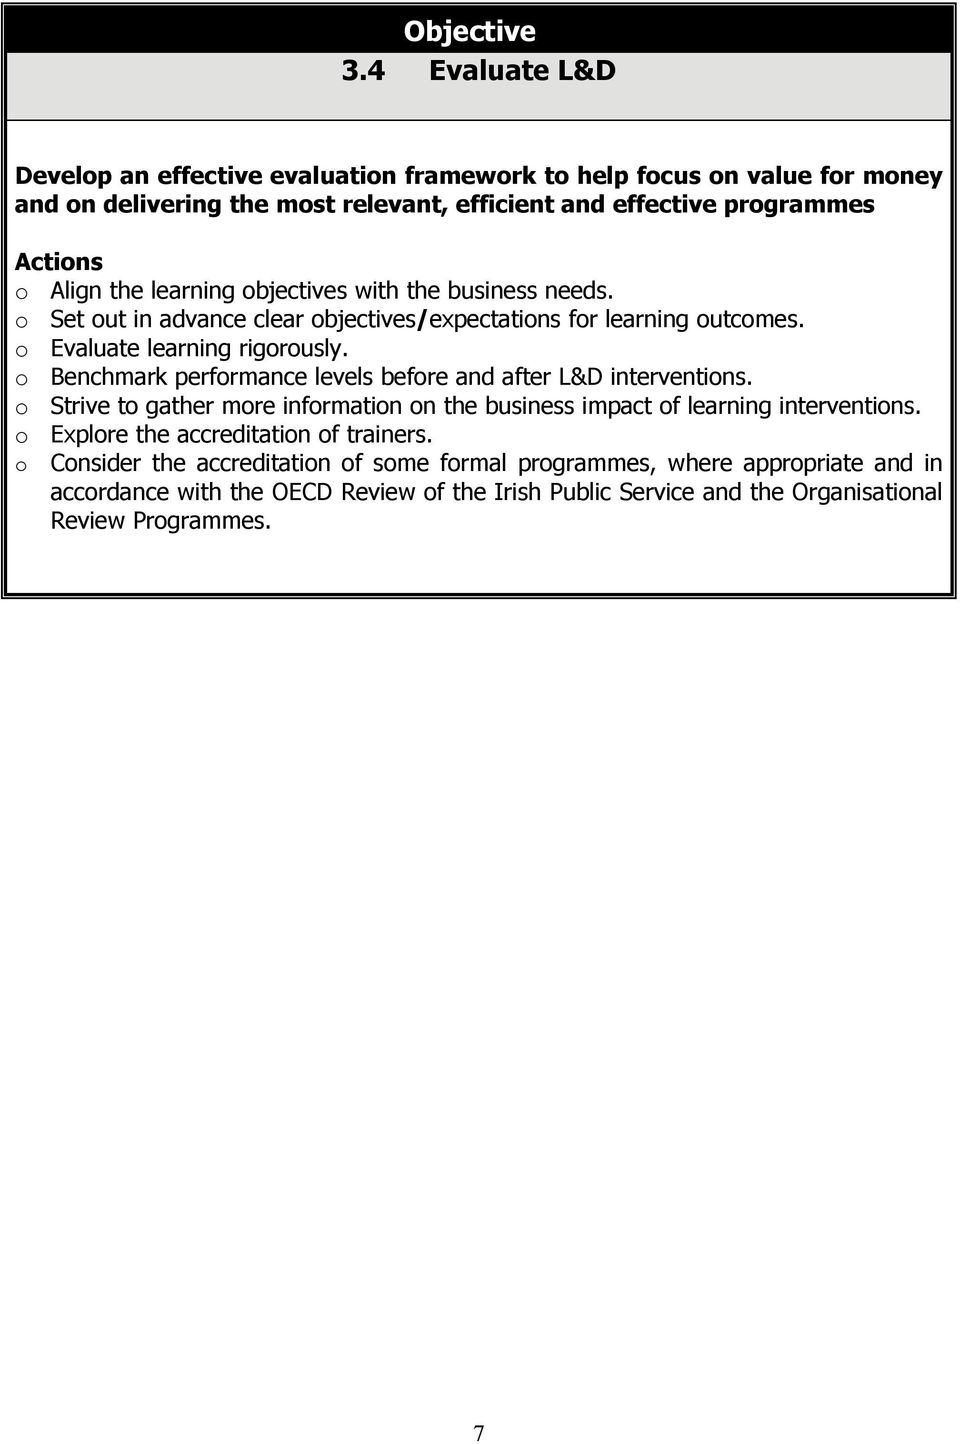 the learning objectives with the business needs. o Set out in advance clear objectives/expectations for learning outcomes. o Evaluate learning rigorously.